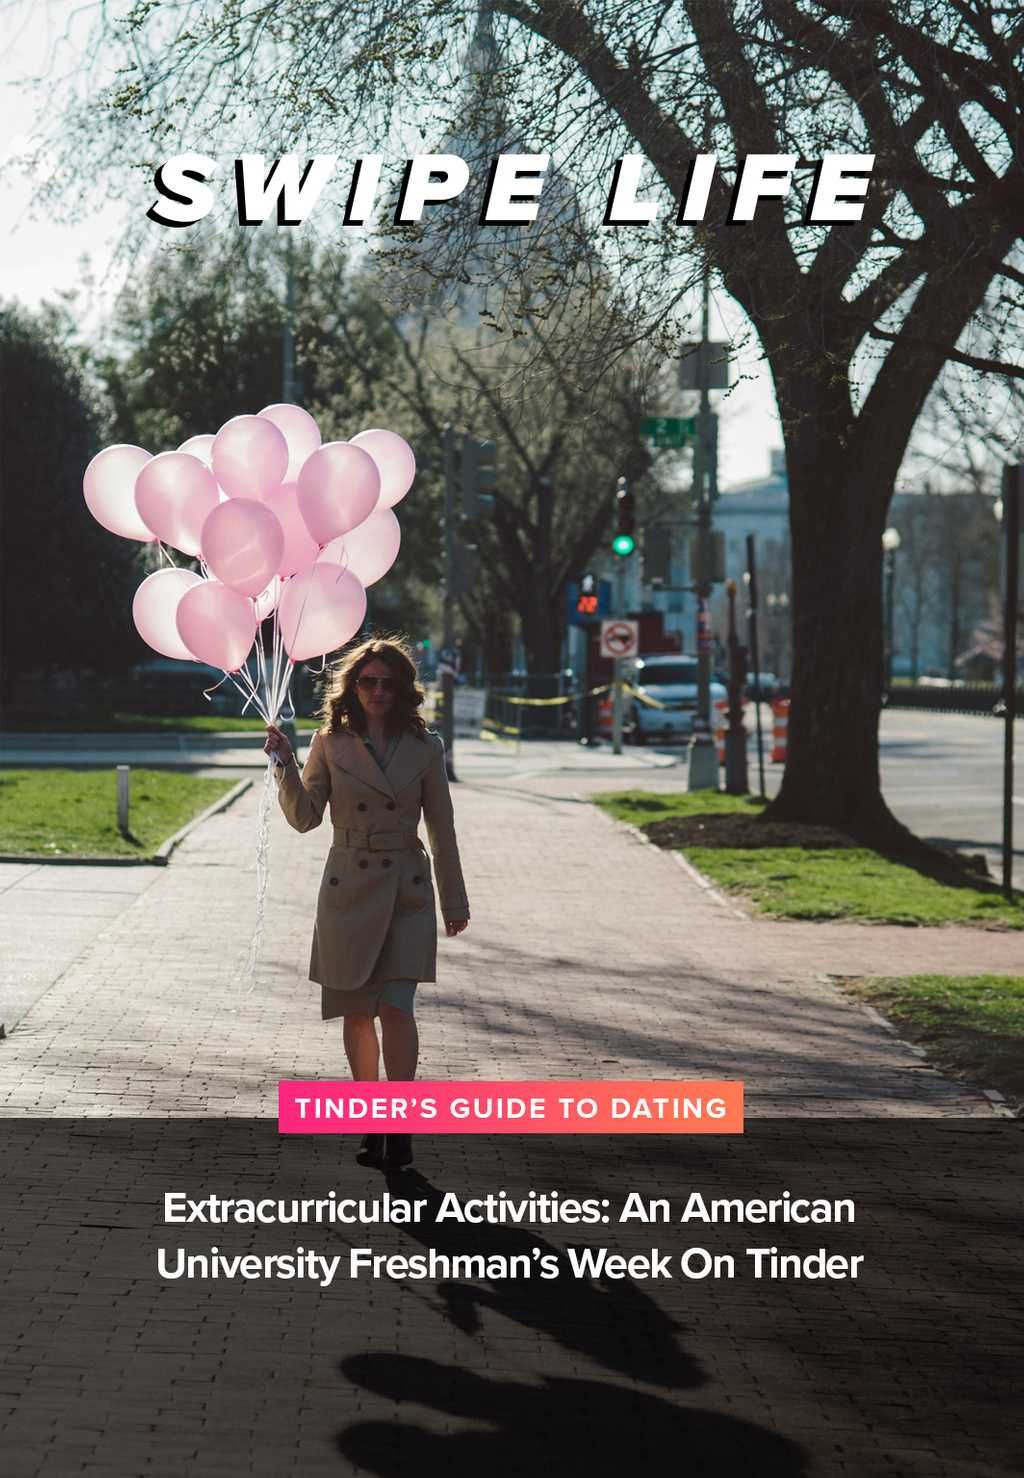 Extracurricular Activities: An American University